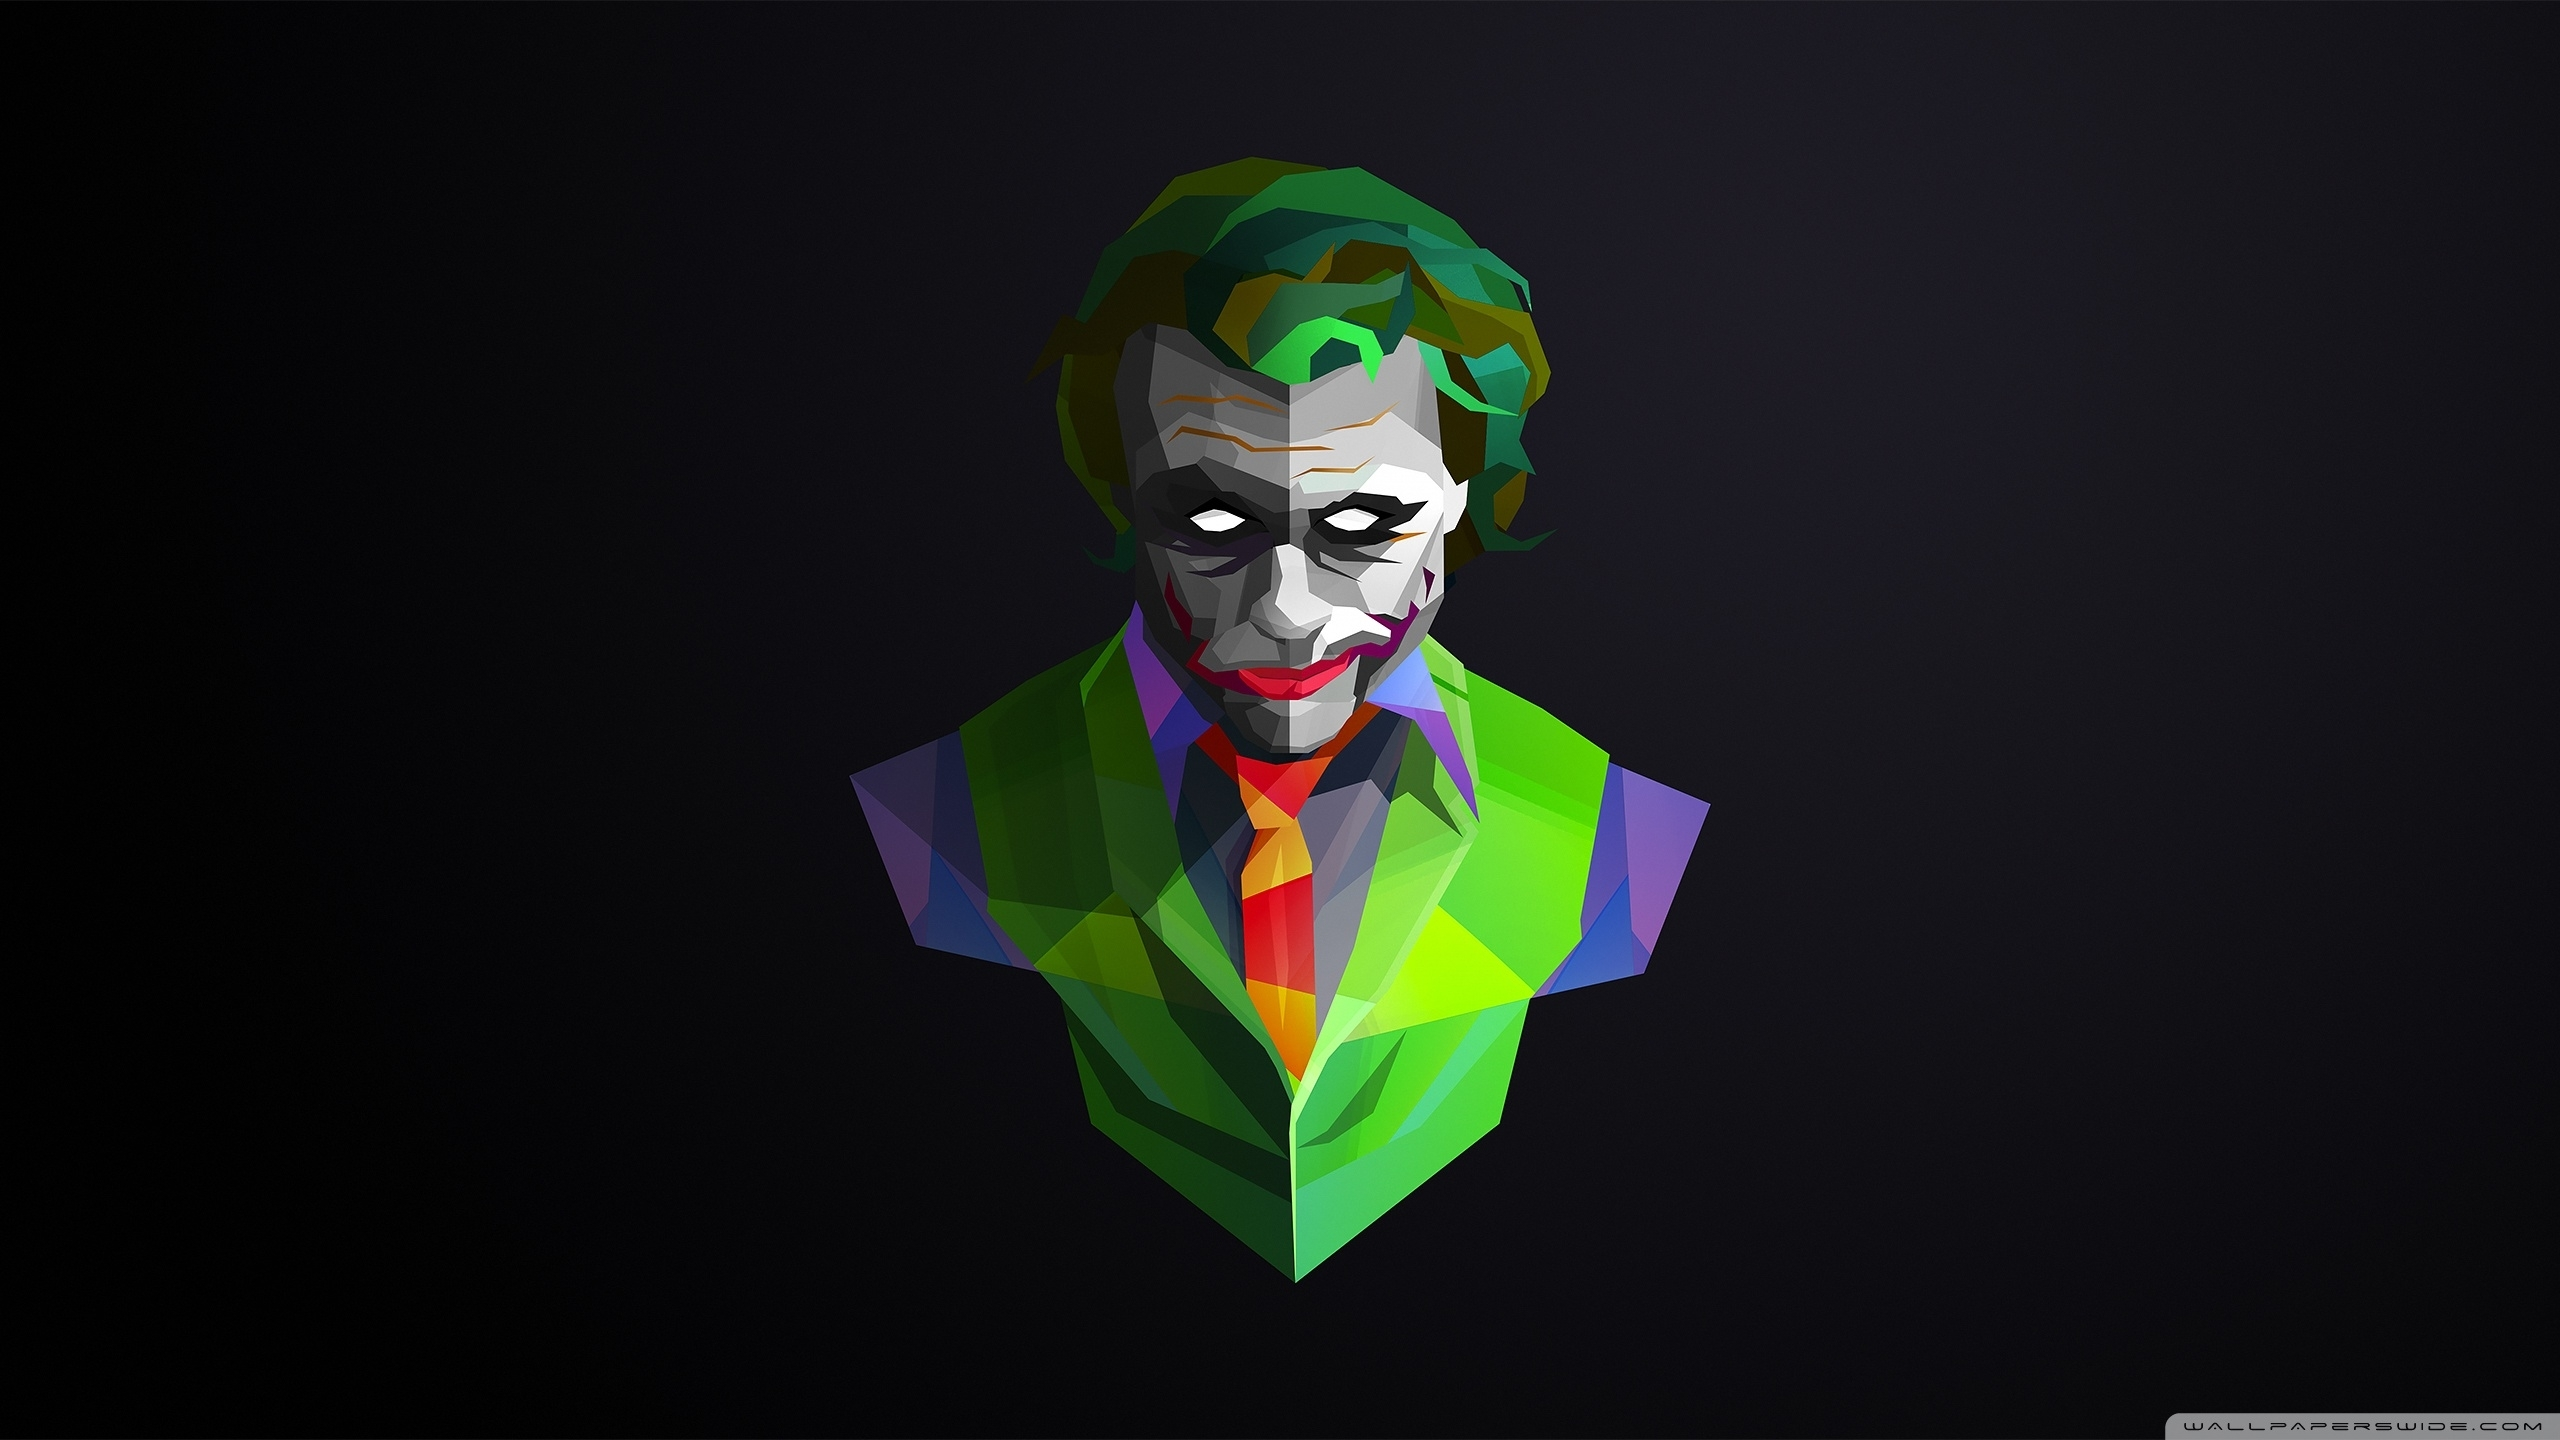 10 Top The Joker Wallpapers Hd FULL HD 1080p For PC Background